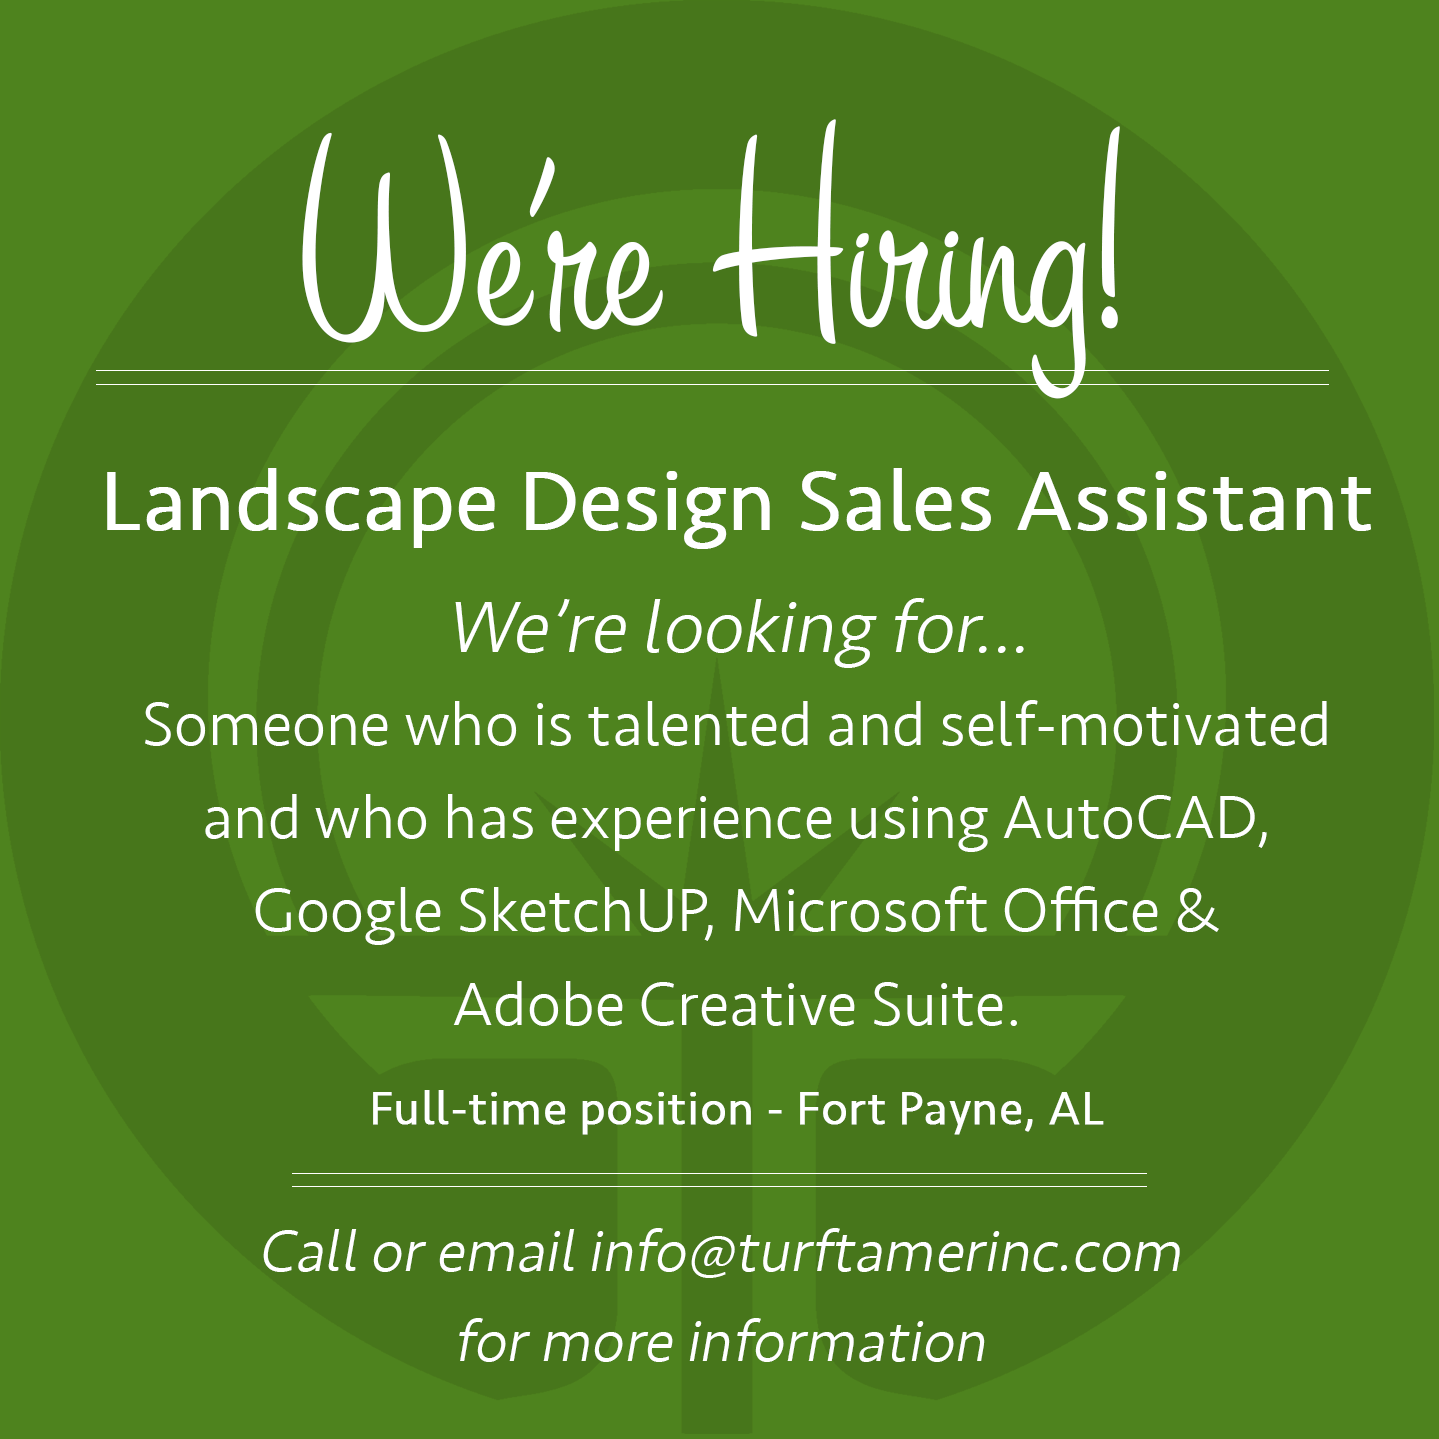 APPLY HERE.  We are seeking a talented and self-motivated individual to join our design team as a Landscape Design Assistant. This individual must have knowledge of AutoCAD (or similar CAD-based software) so they may quickly learn the software we use in the design office (DynaSCAPE Design) and being proficient in Google SketchUP is a plus. Primary duties will include assisting the Landscape Design Specialist to quickly produce presentation design materials such as DynaSCAPE plan drawings (both black/white and color) and accompanying 3D SketchUP images. The selected candidate will also work with the owner, clients, production, and sales staff to perform various tasks as needed and become exposed to all aspects of a landscape development firm.   Qualifications:   Excellent written, oral, and graphic communication skills  Solid interpersonal and organizational skills  Capacity to multitask and manage multiple short-term projects at once  Ability to read and understand construction documents/plans, and excellent hand graphics skills are a plus.  Strong knowledge of plant materials is a plus  Ability to conduct a thorough site analysis  Ability to analyze drainage and grading requirements  A portfolio of completed jobs is a plus but not required   Experience:   1 year of experience using Microsoft Office, Sketch-up, CAD & the Adobe Creative Suite  1 year on the job experience in the green industry  Prior sales experience is a plus but not required   Requirements:   A Valid Driver's License and clean driving record  Bachelors' degree in a related field or a certificate in landscape design  Exceptional customer service skills   Job Location:  Fort Payne, AL to include our Chattanooga Tennessee and Huntsville Alabama Branches   Job Type:  Full time   Compensation:  Competitive pay and benefits  APPLY HERE.